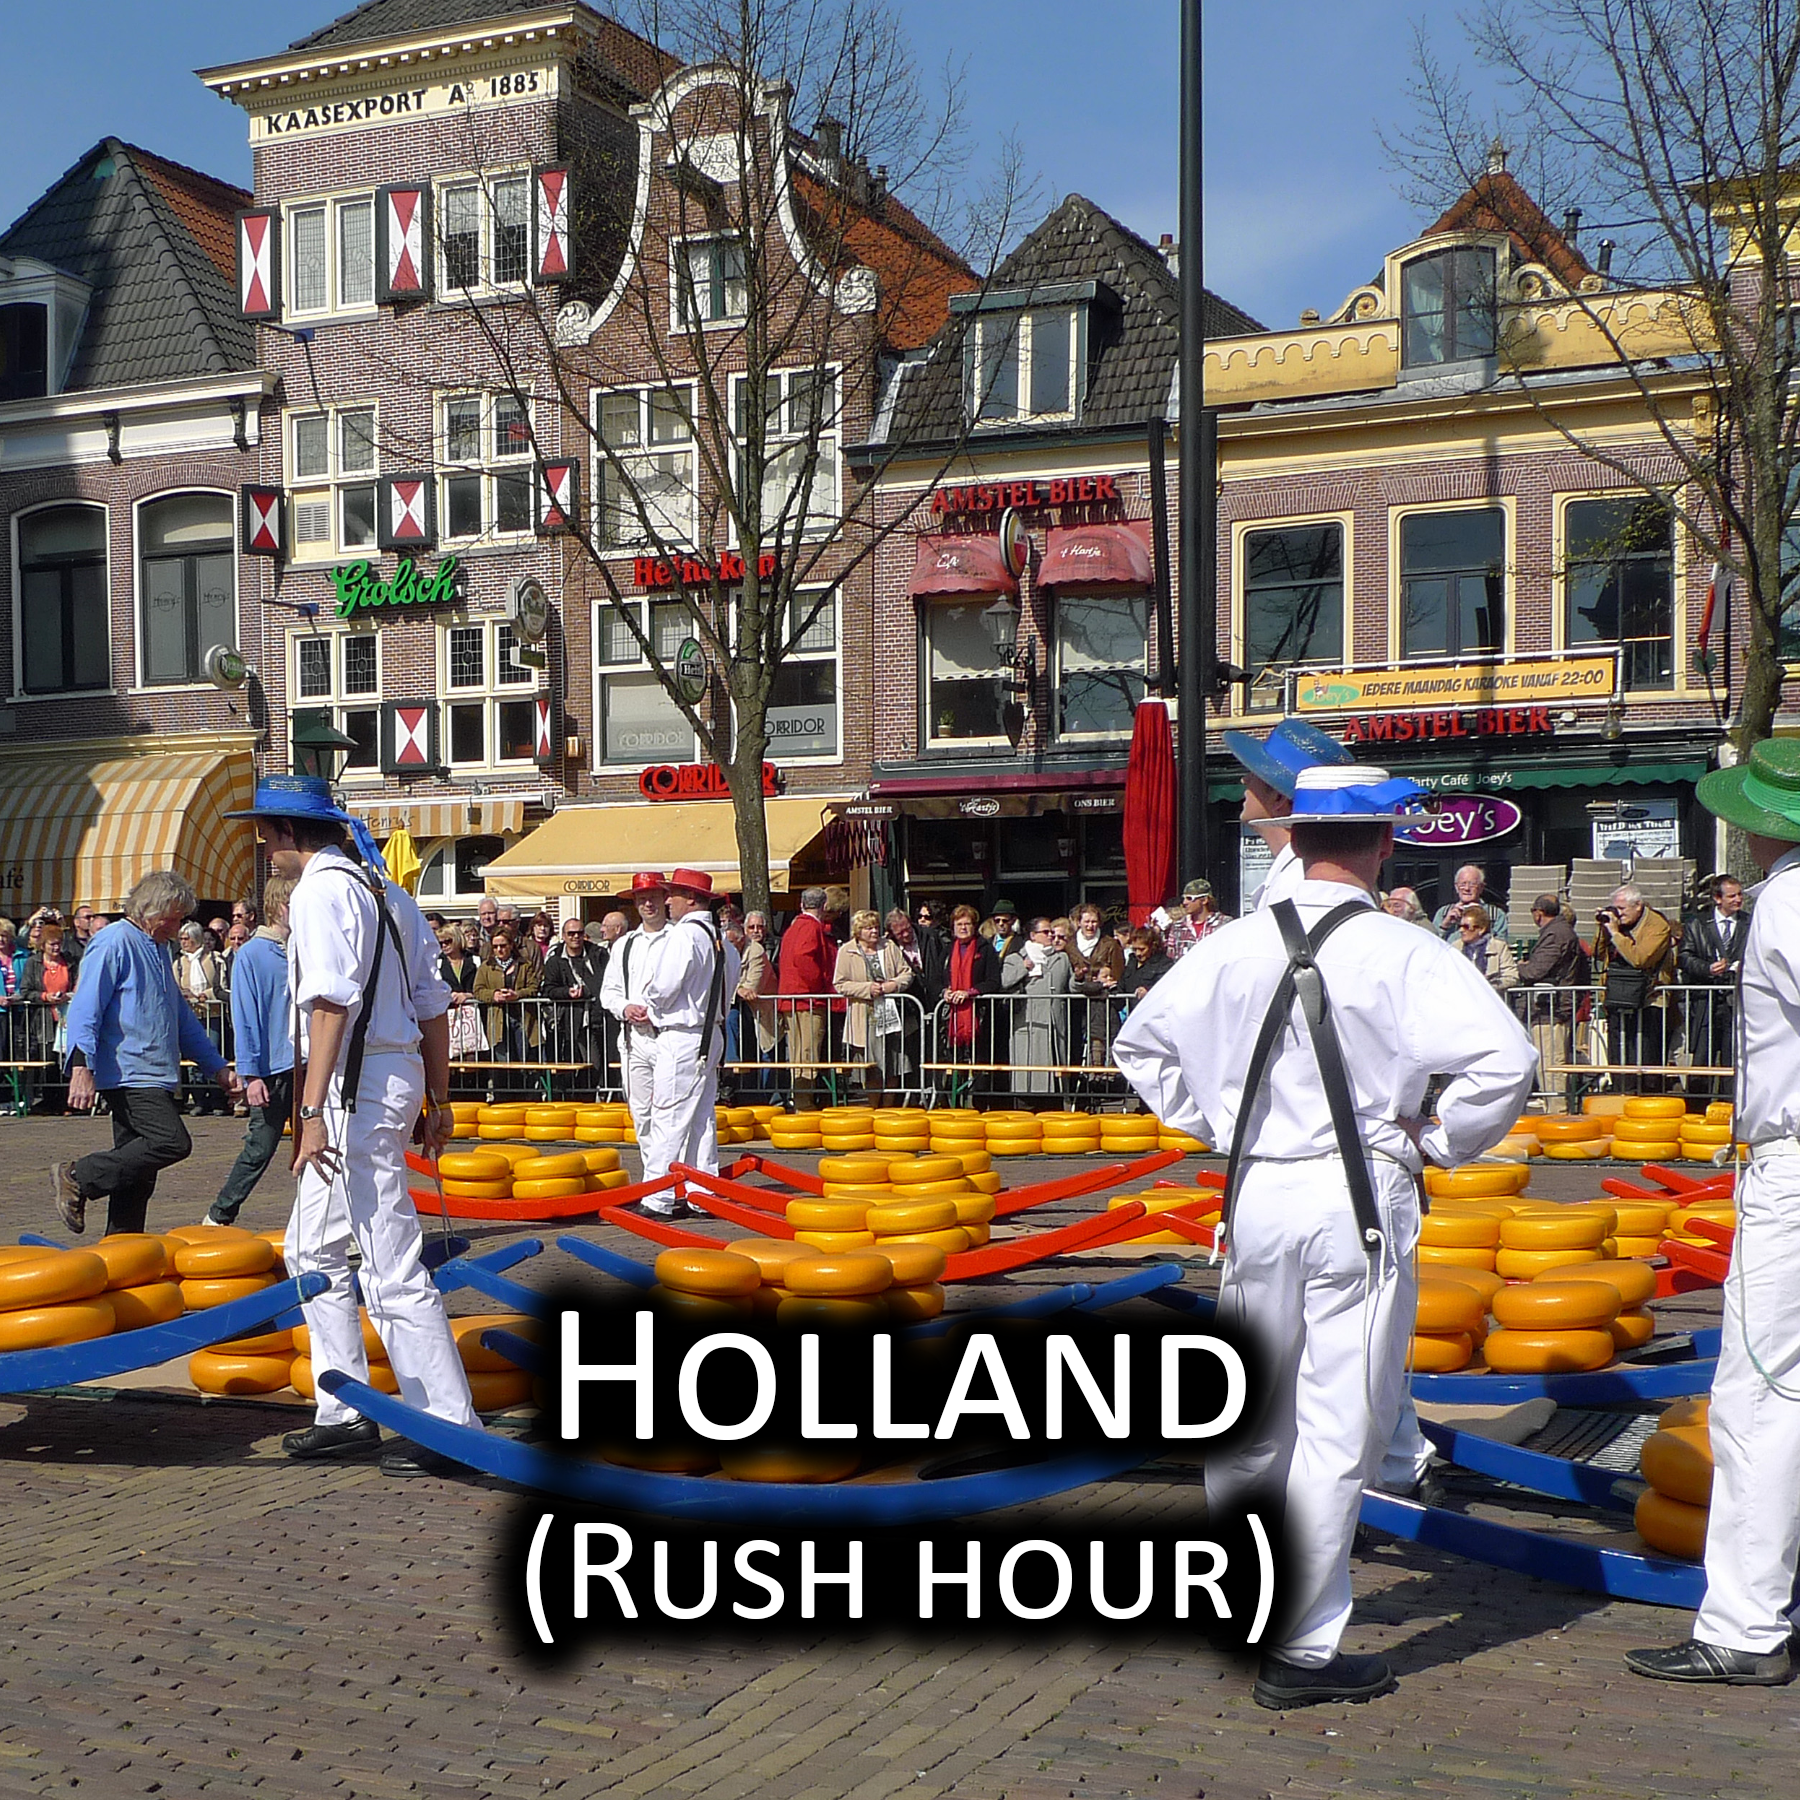 Holland at rush hour